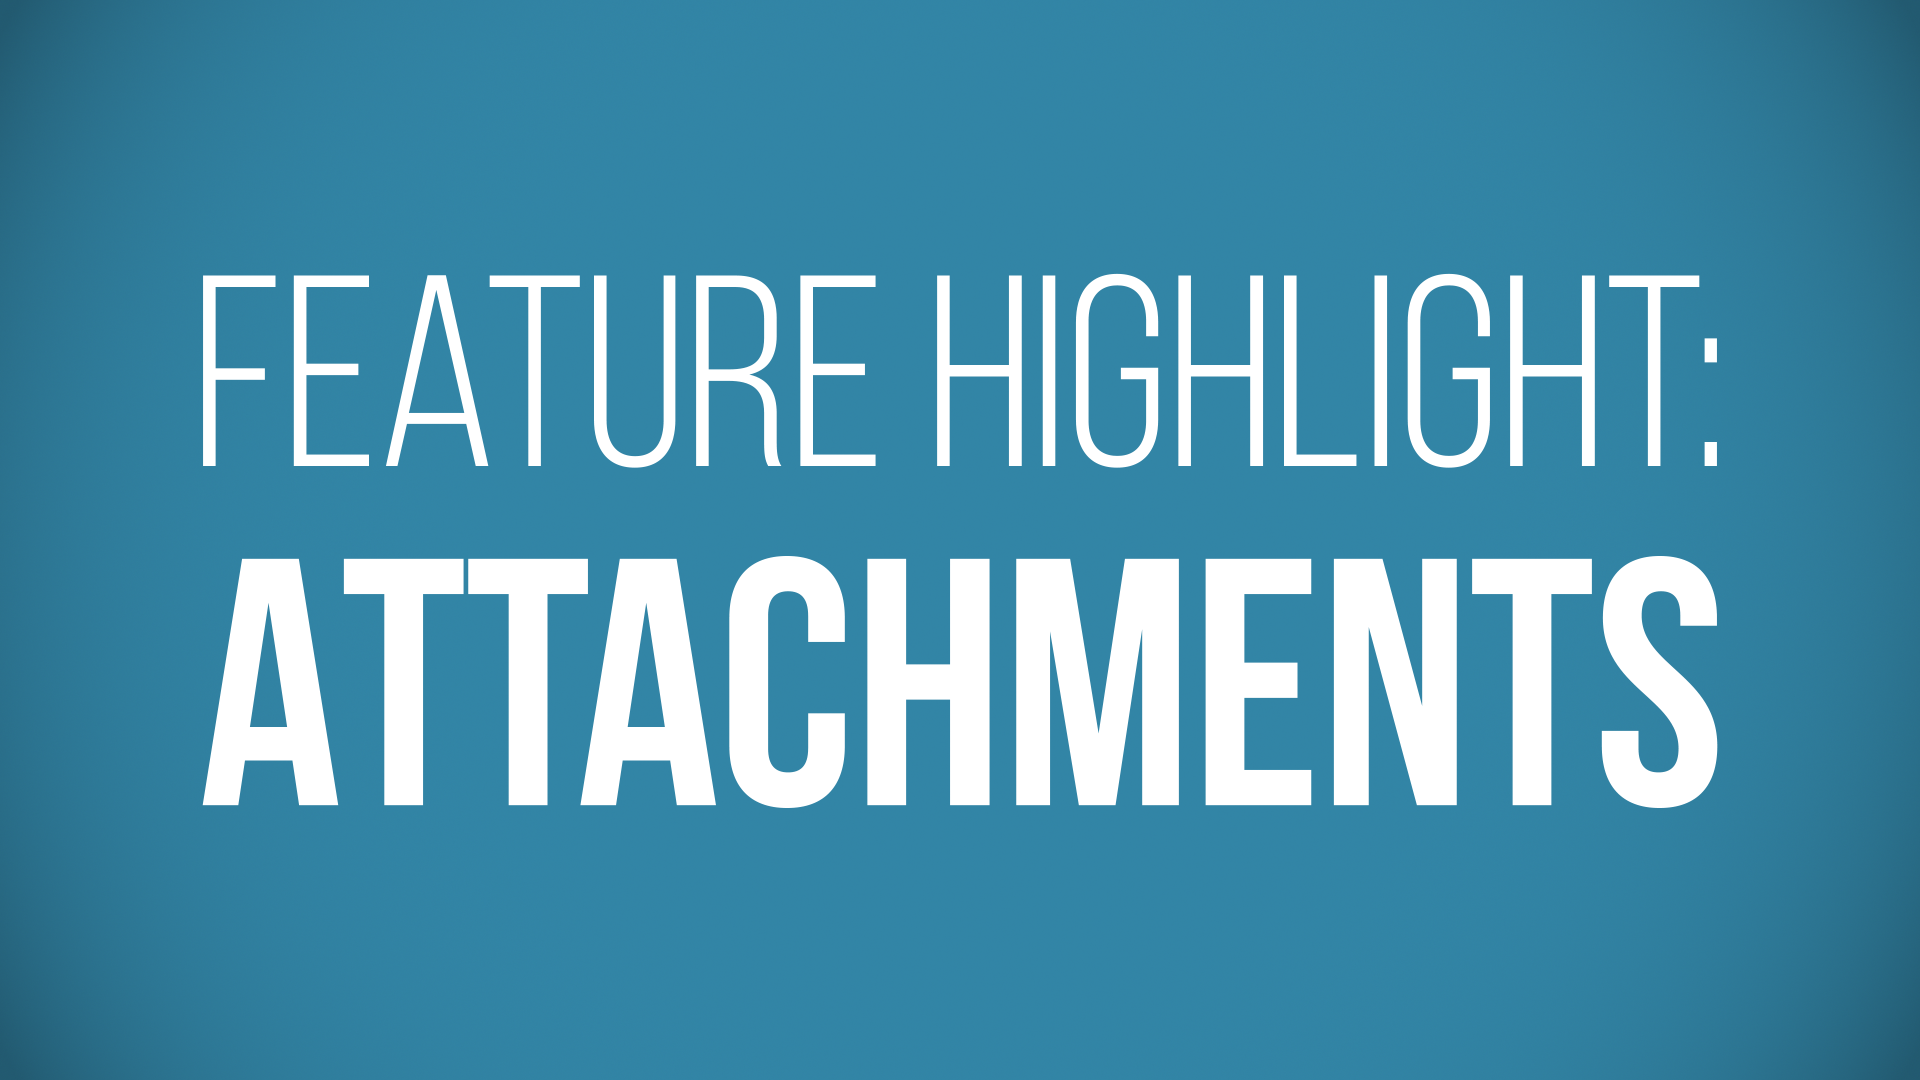 Feature Highlight: Attachments